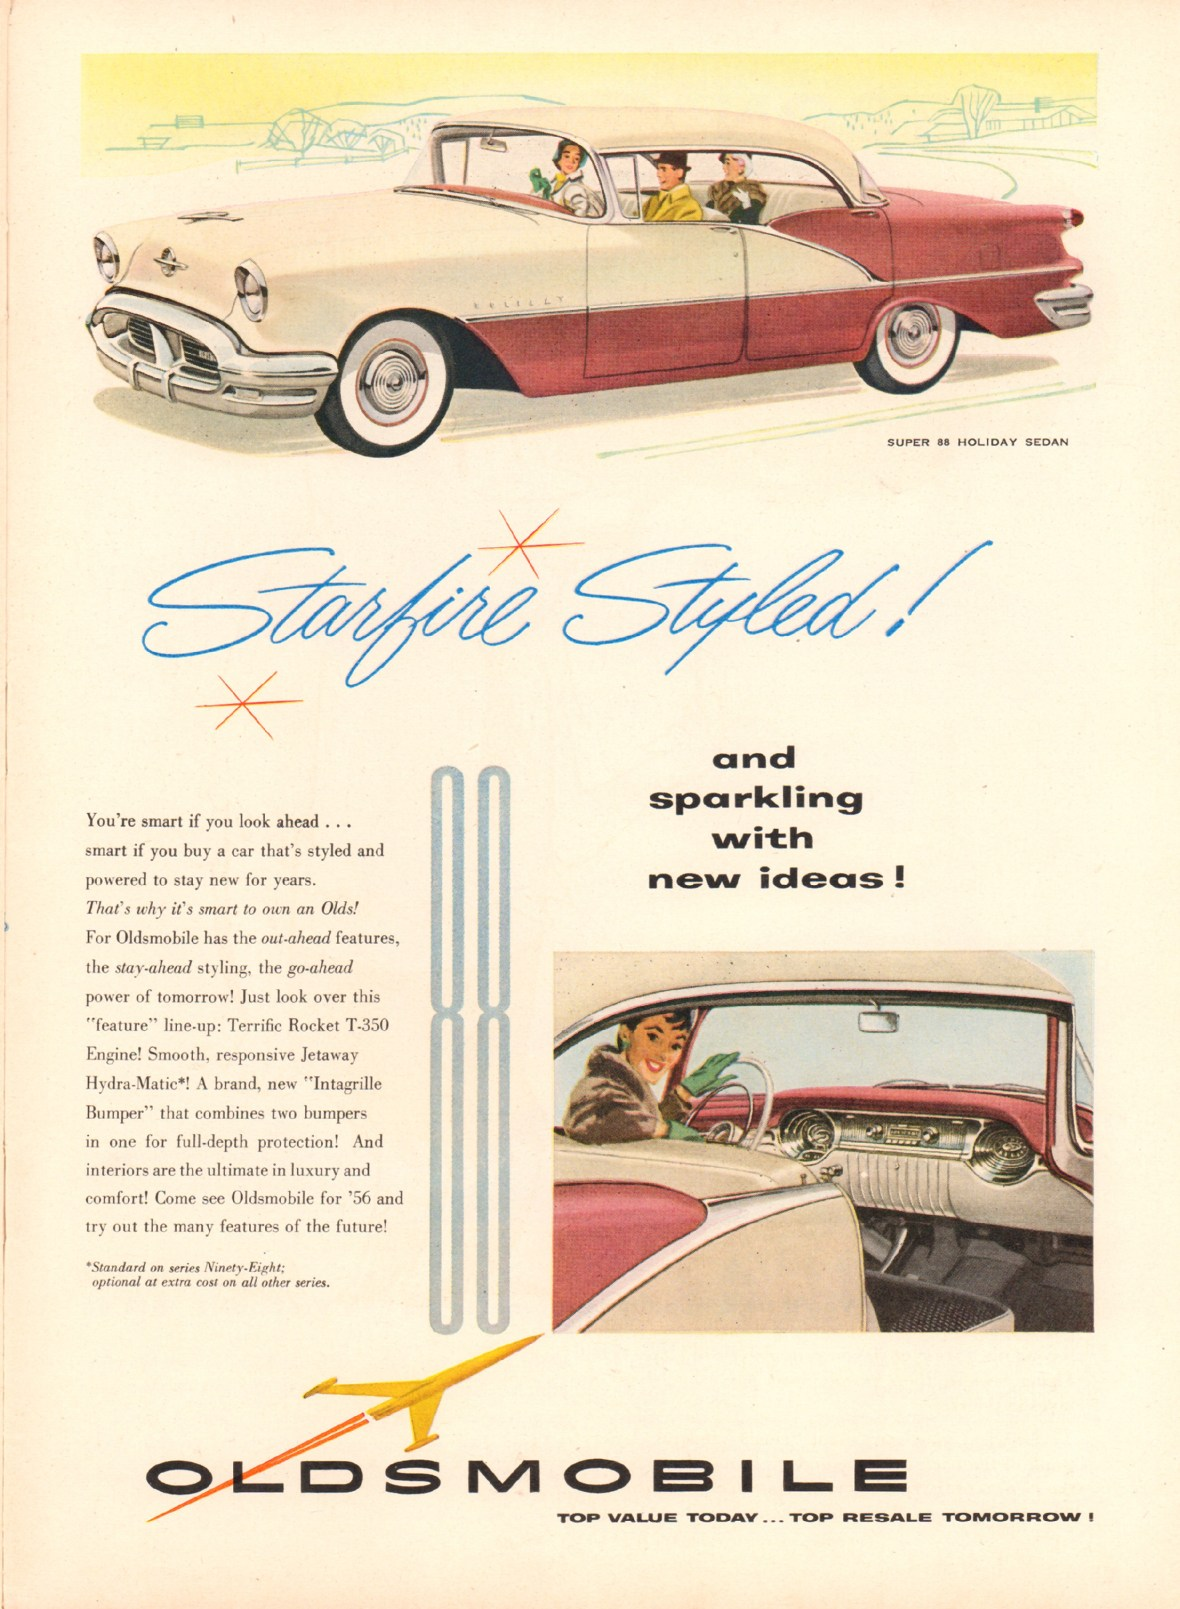 1956 Oldsmobile Super 88 Holiday Sedan - published in Time - April 2, 1956